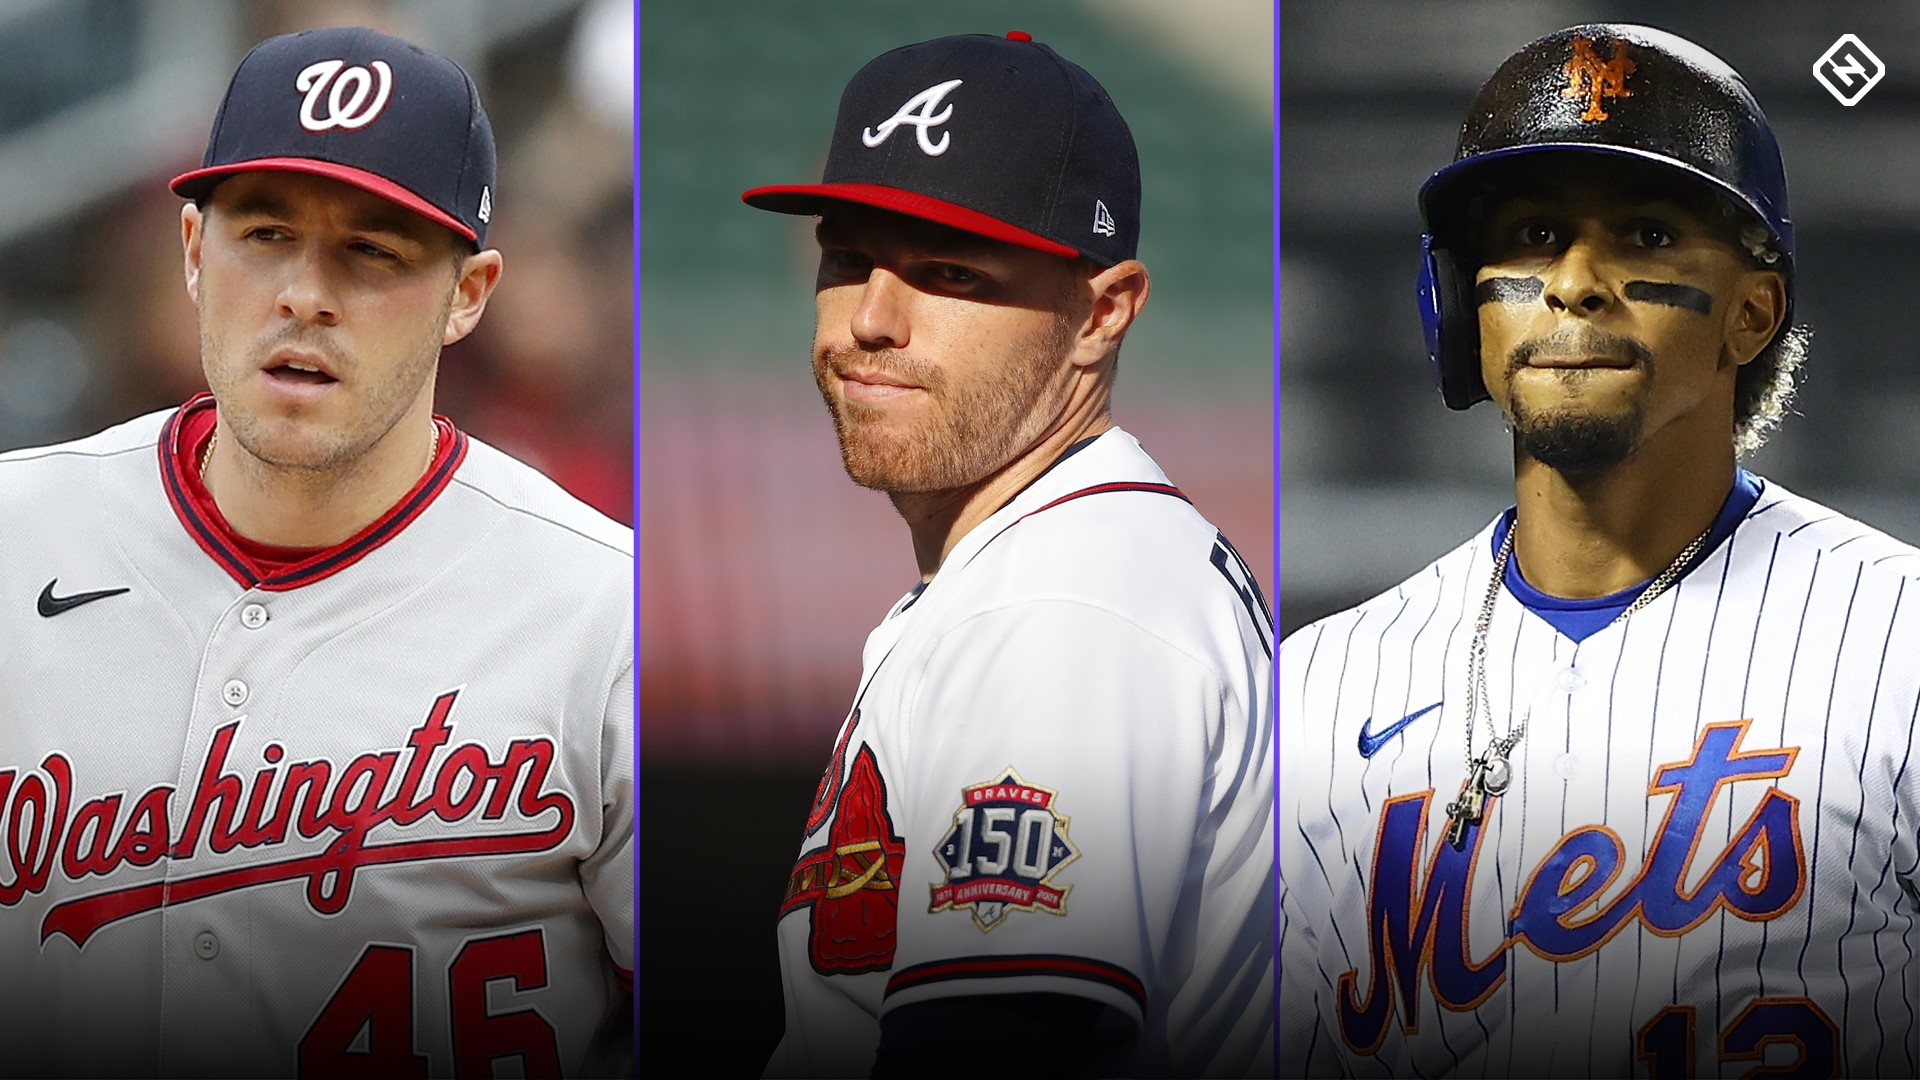 Why is the NL East so blah? A team-by-team look at division struggles